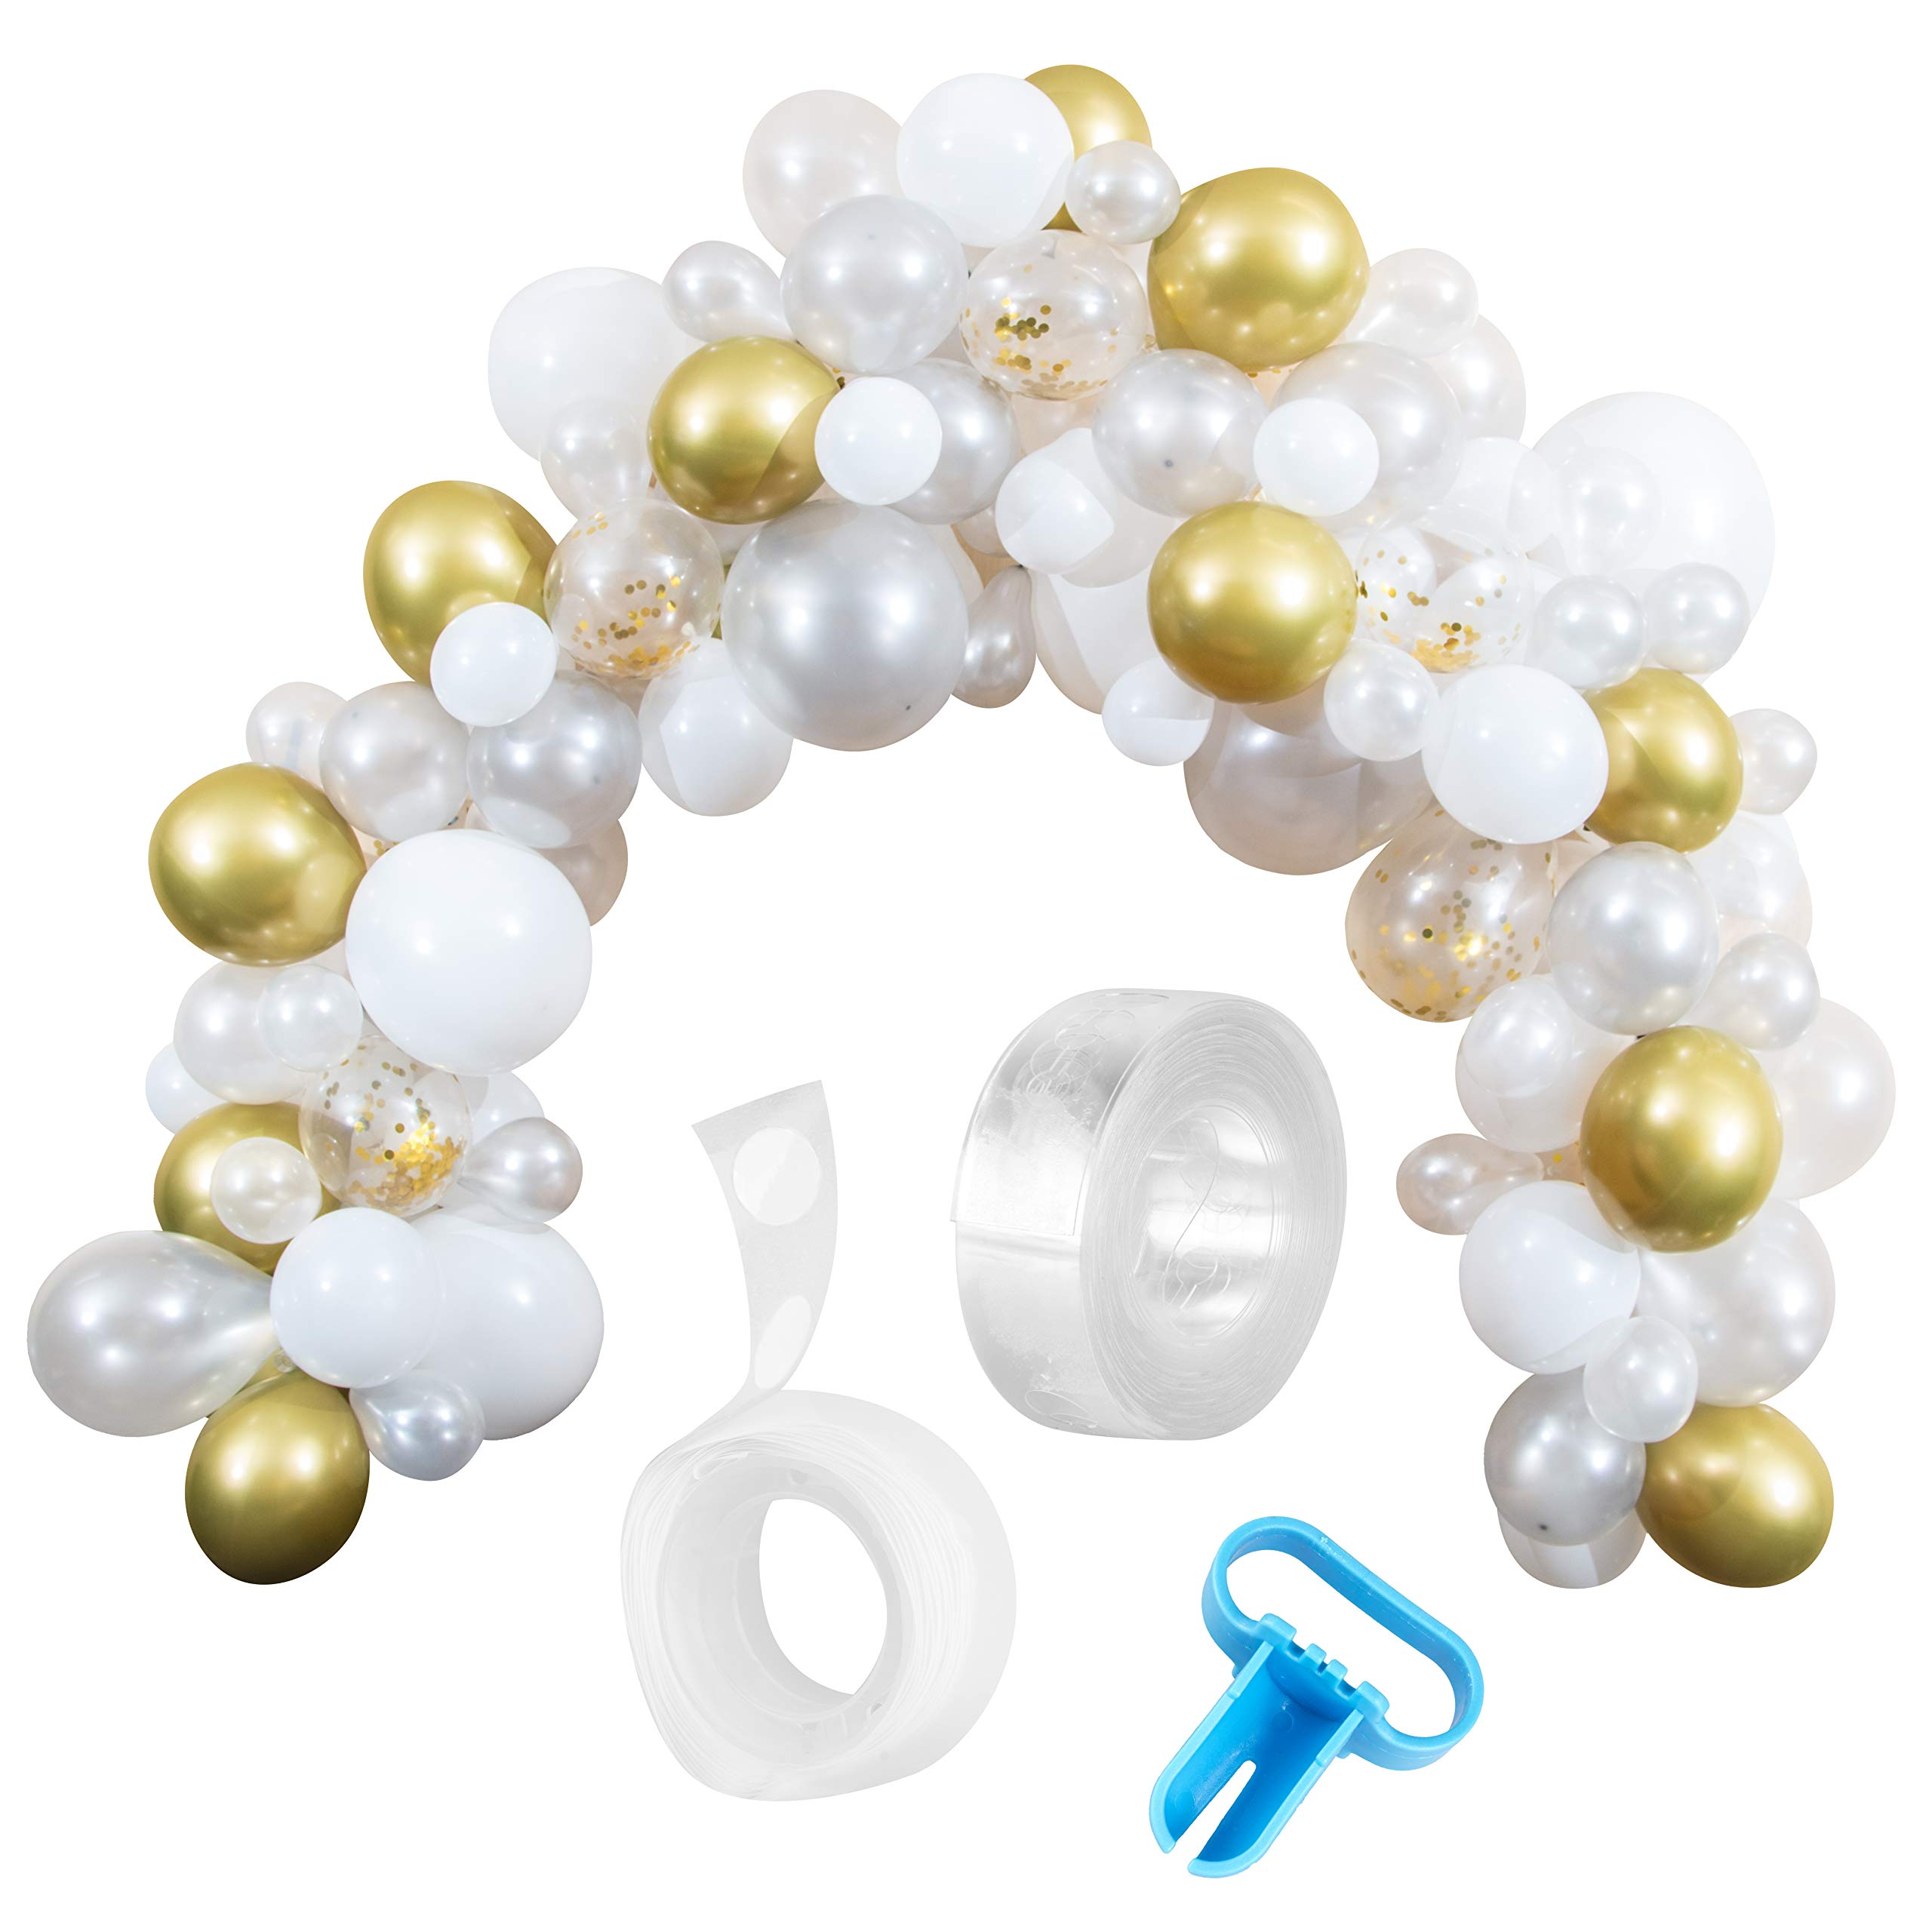 Styl'd Setter Balloon Garland Kit - 114 Pieces White and Gold Latex Balloon Arch Garland with 16 Feet Decoration Strip, Confetti Balloons for Housewarming, Birthdays, Baby Showers,Anniversary Parties